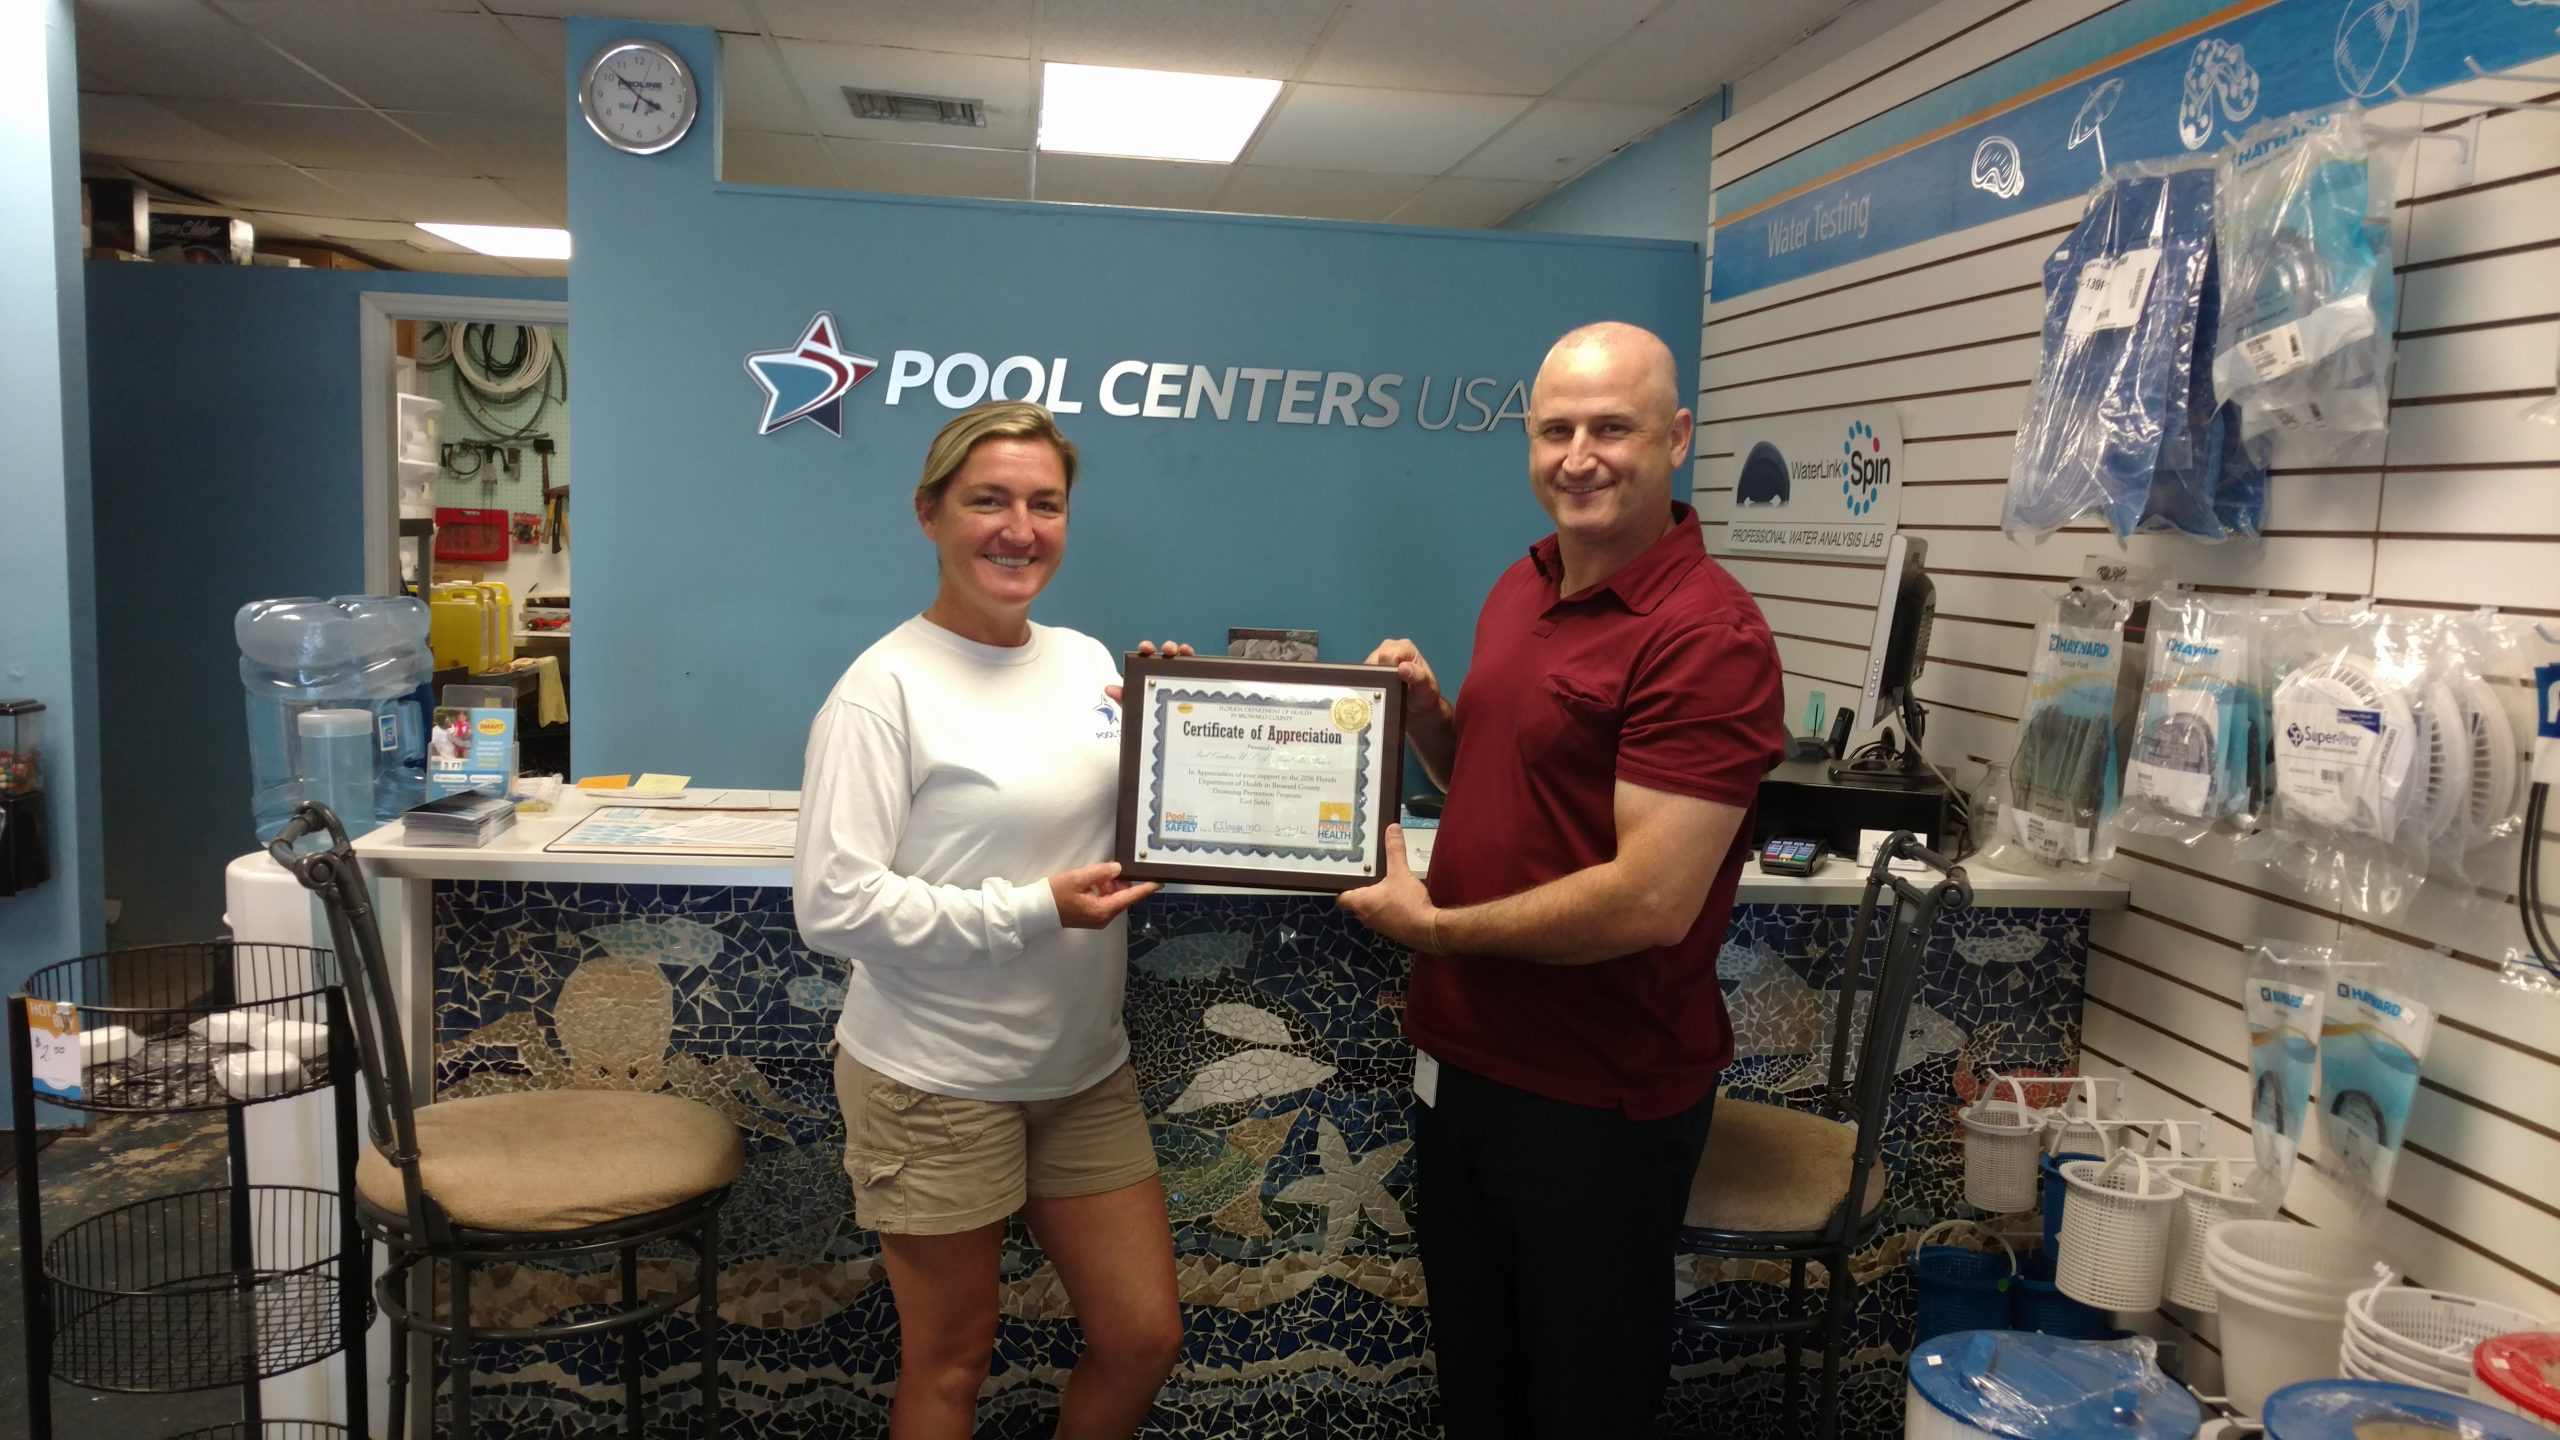 Pool Centers USA